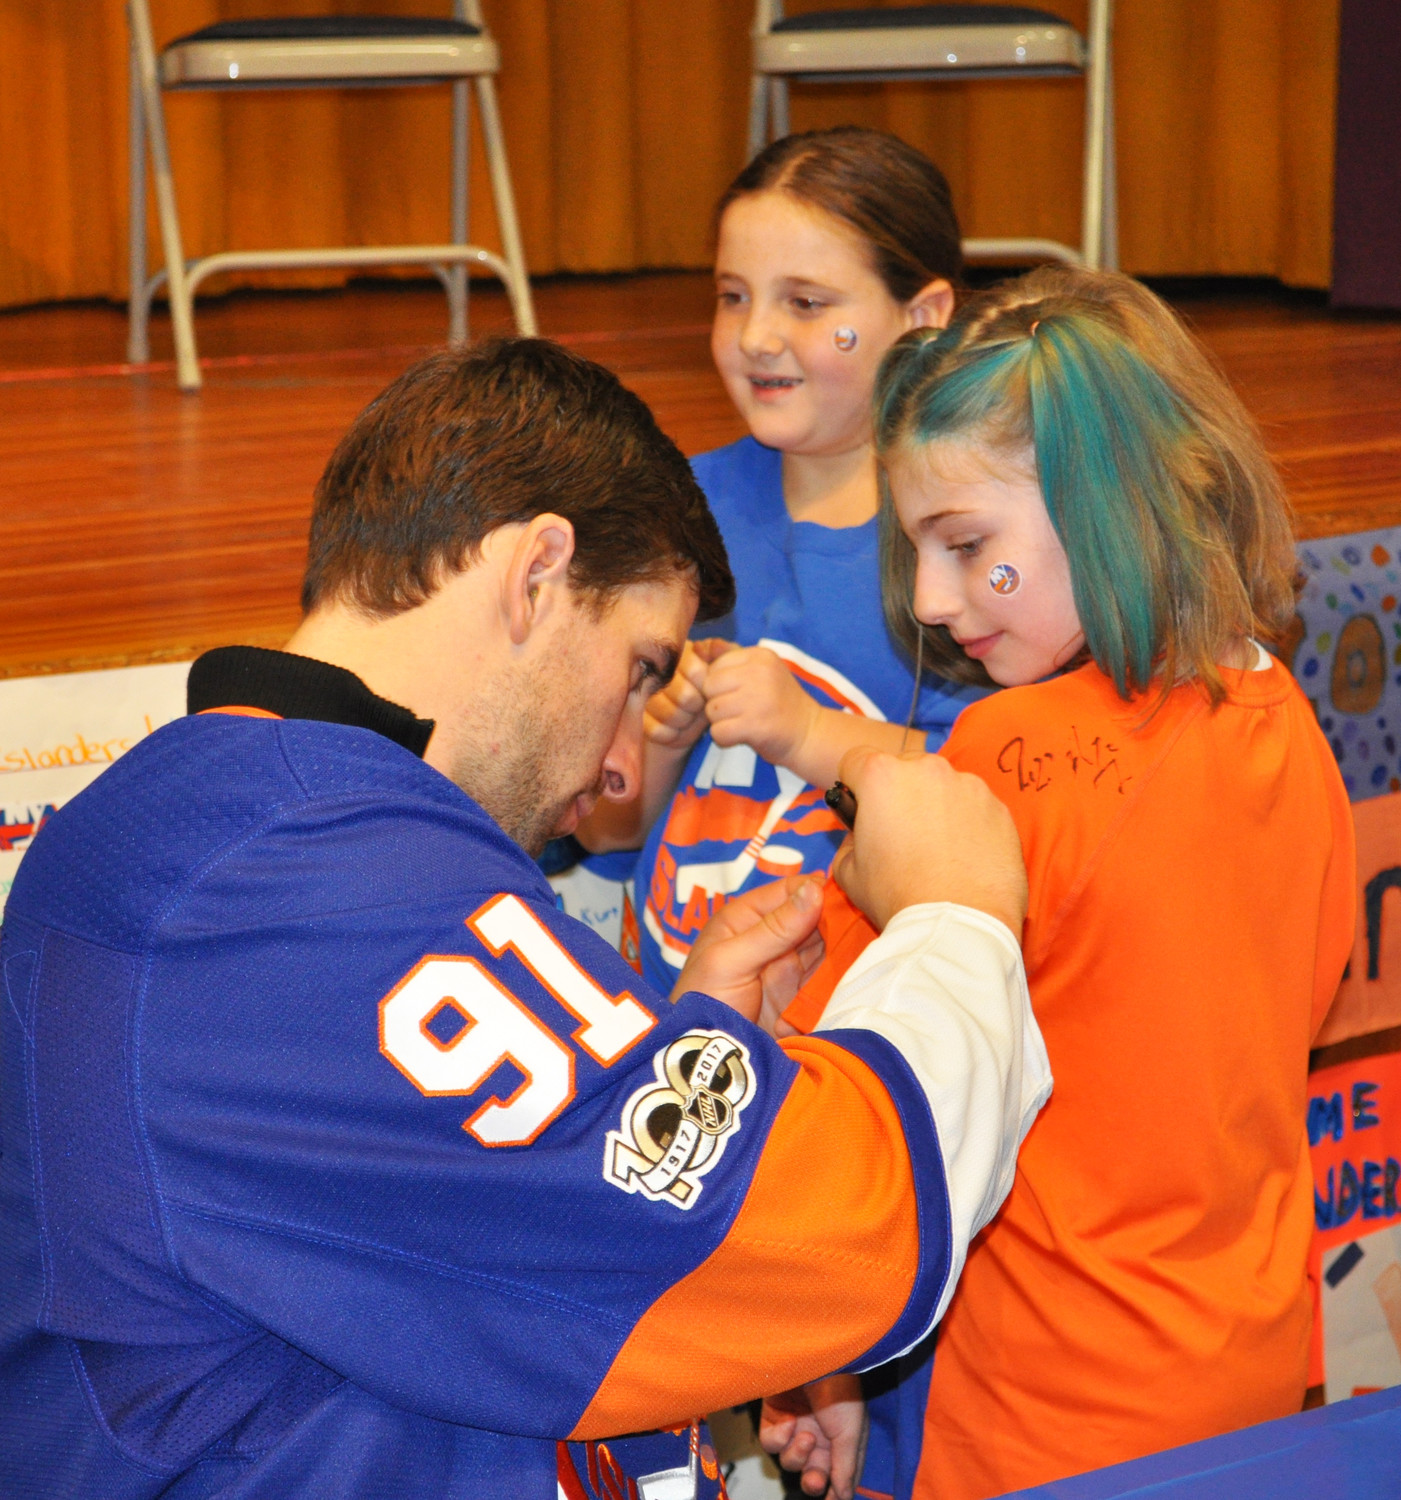 Samantha Romano came to the event with a vintage Islanders shirt, which she had the teammates autograph.